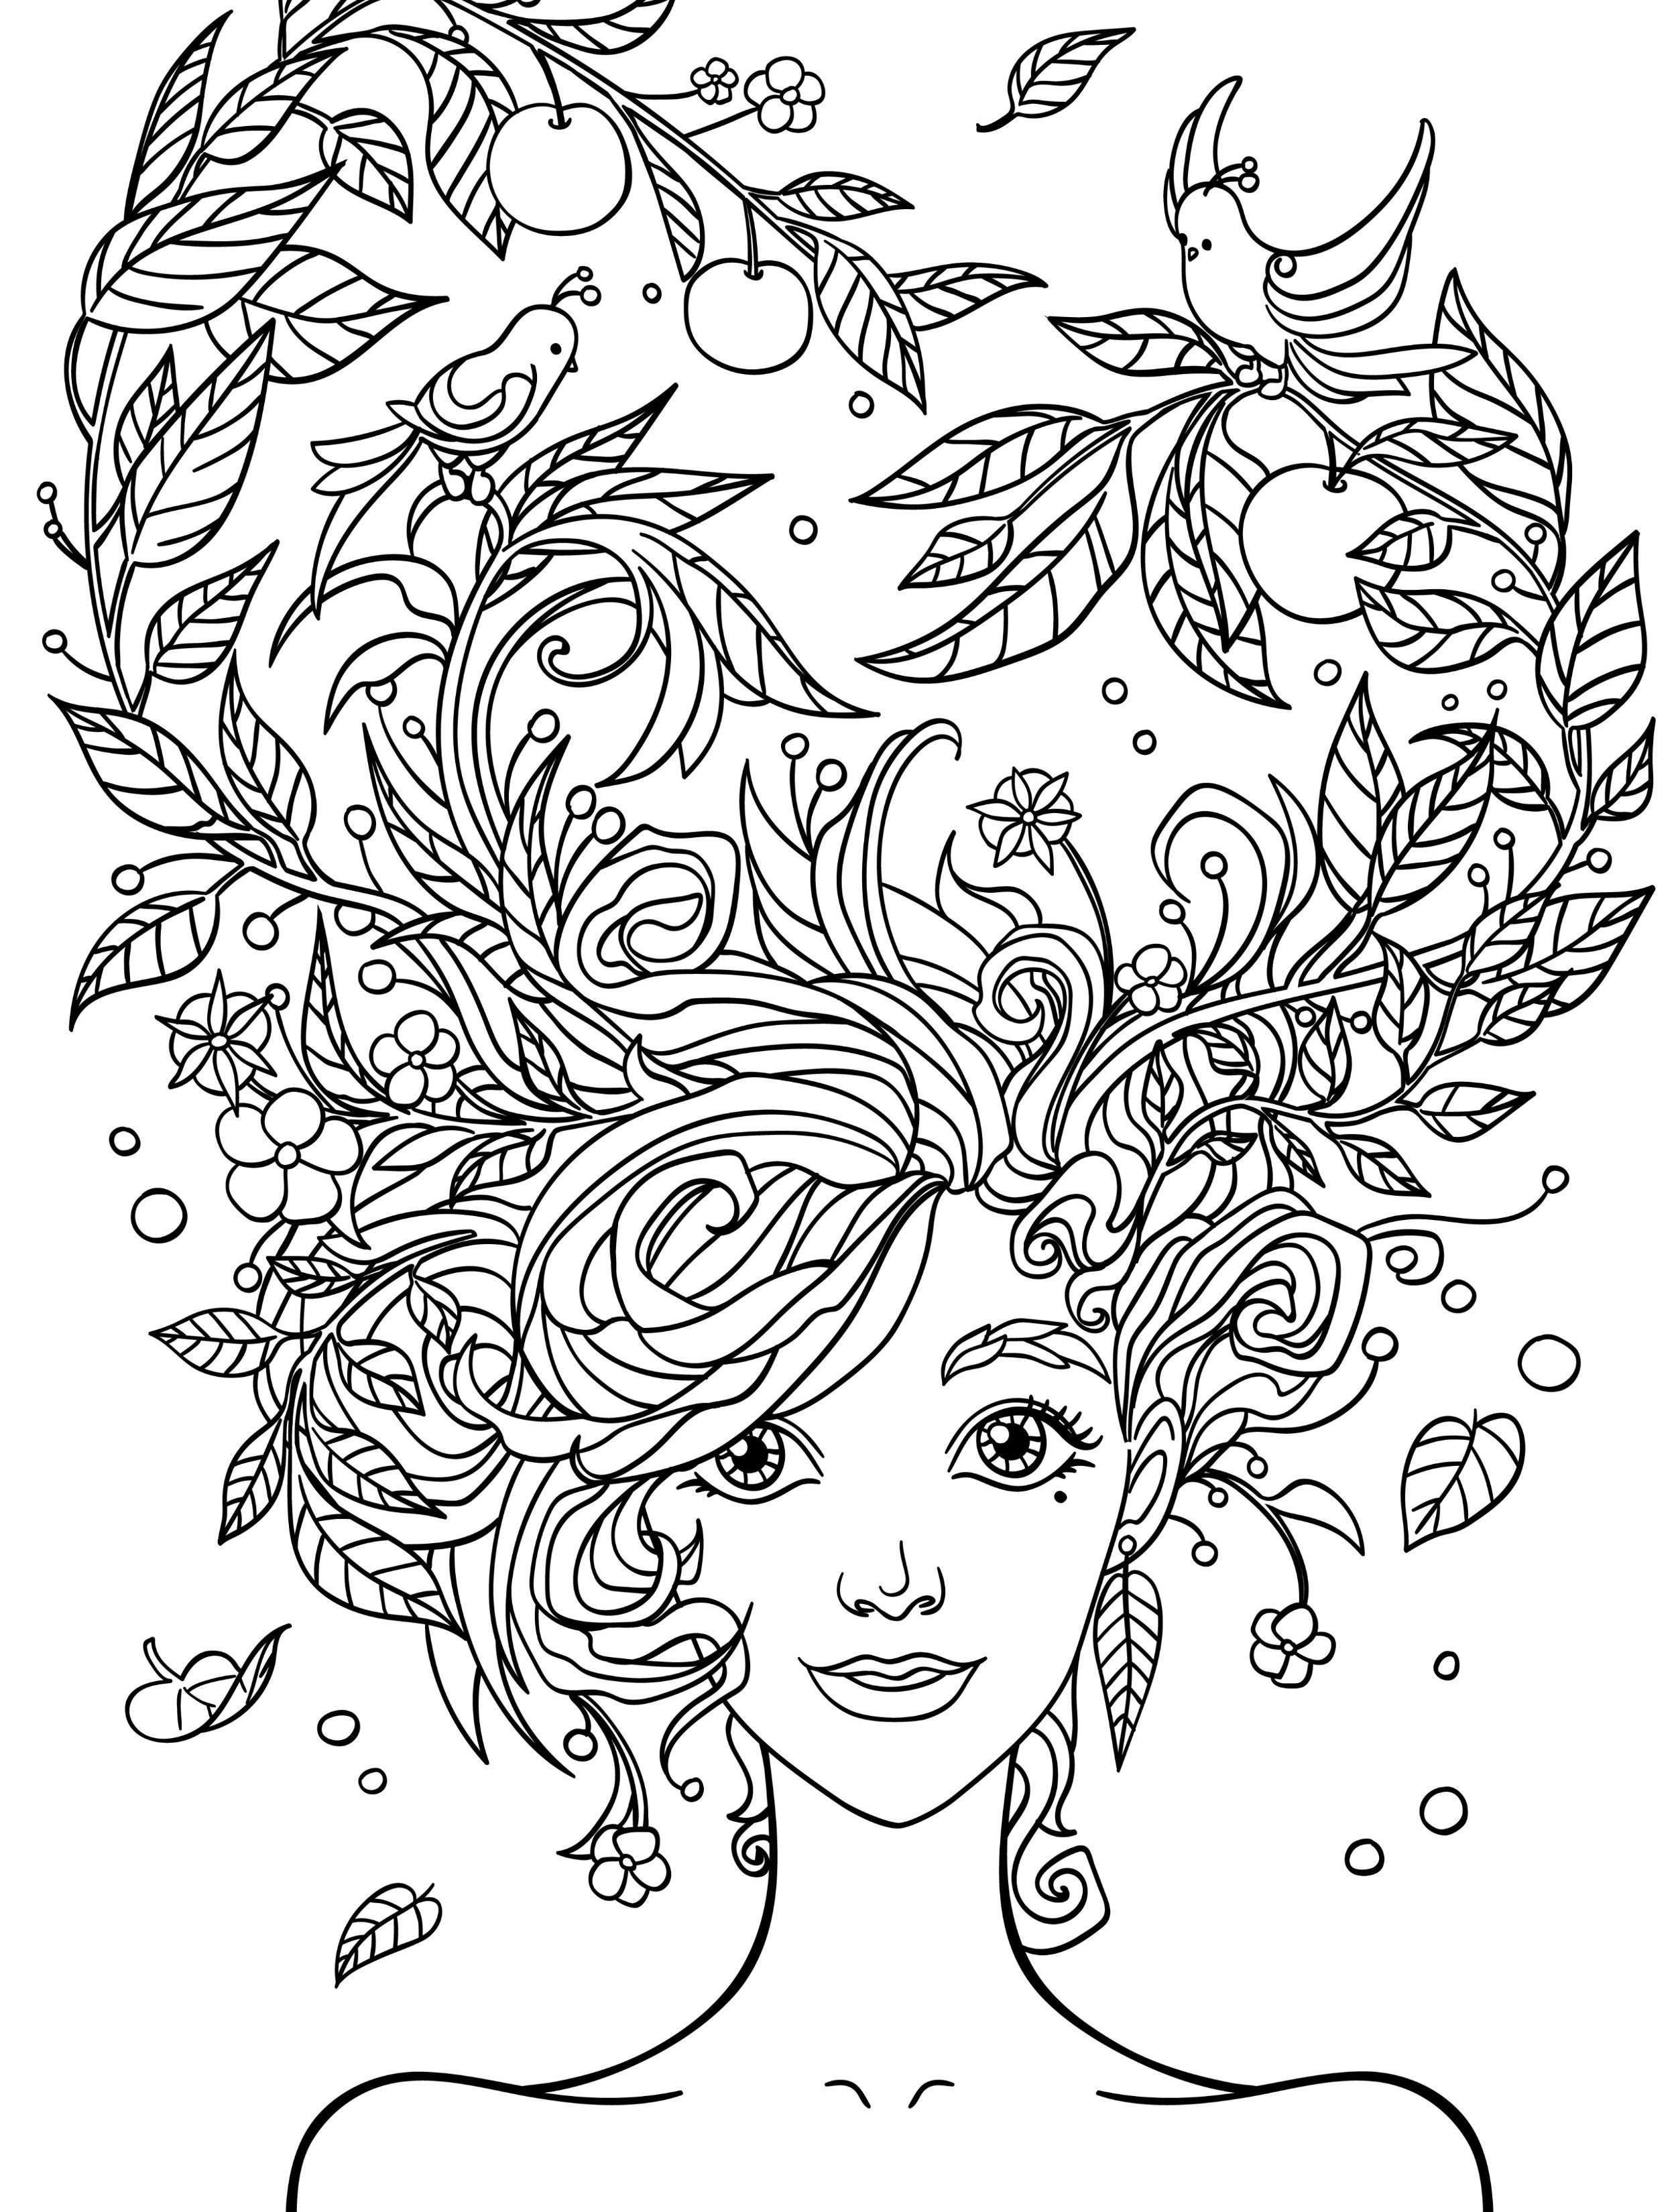 large coloring pages for adults - photo#39